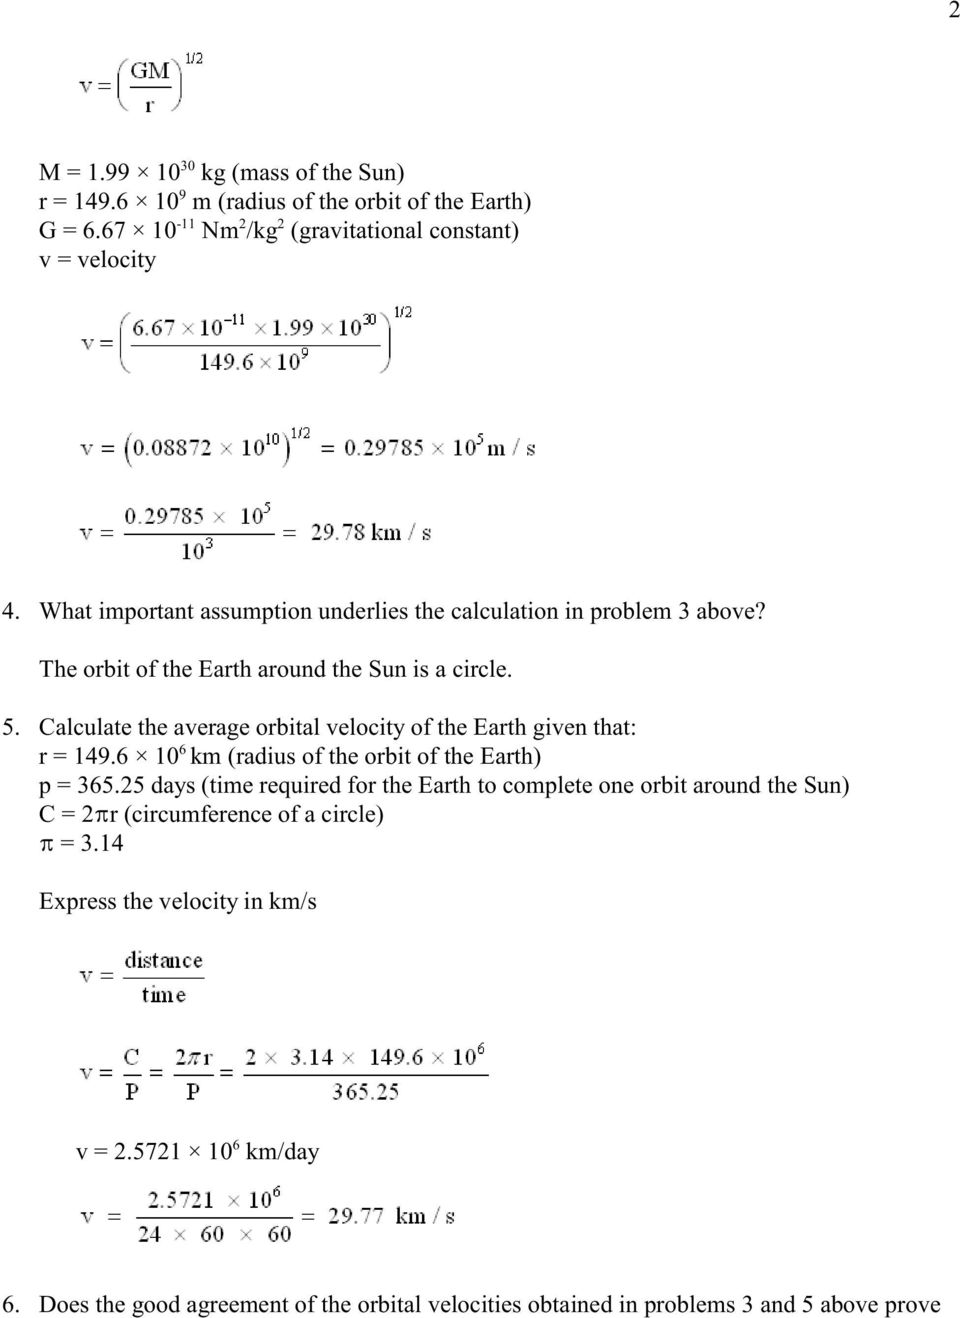 Calculate the average orbital velocity of the Earth given that: 6 r = 149.6 10 km (radius of the orbit of the Earth) p = 365.